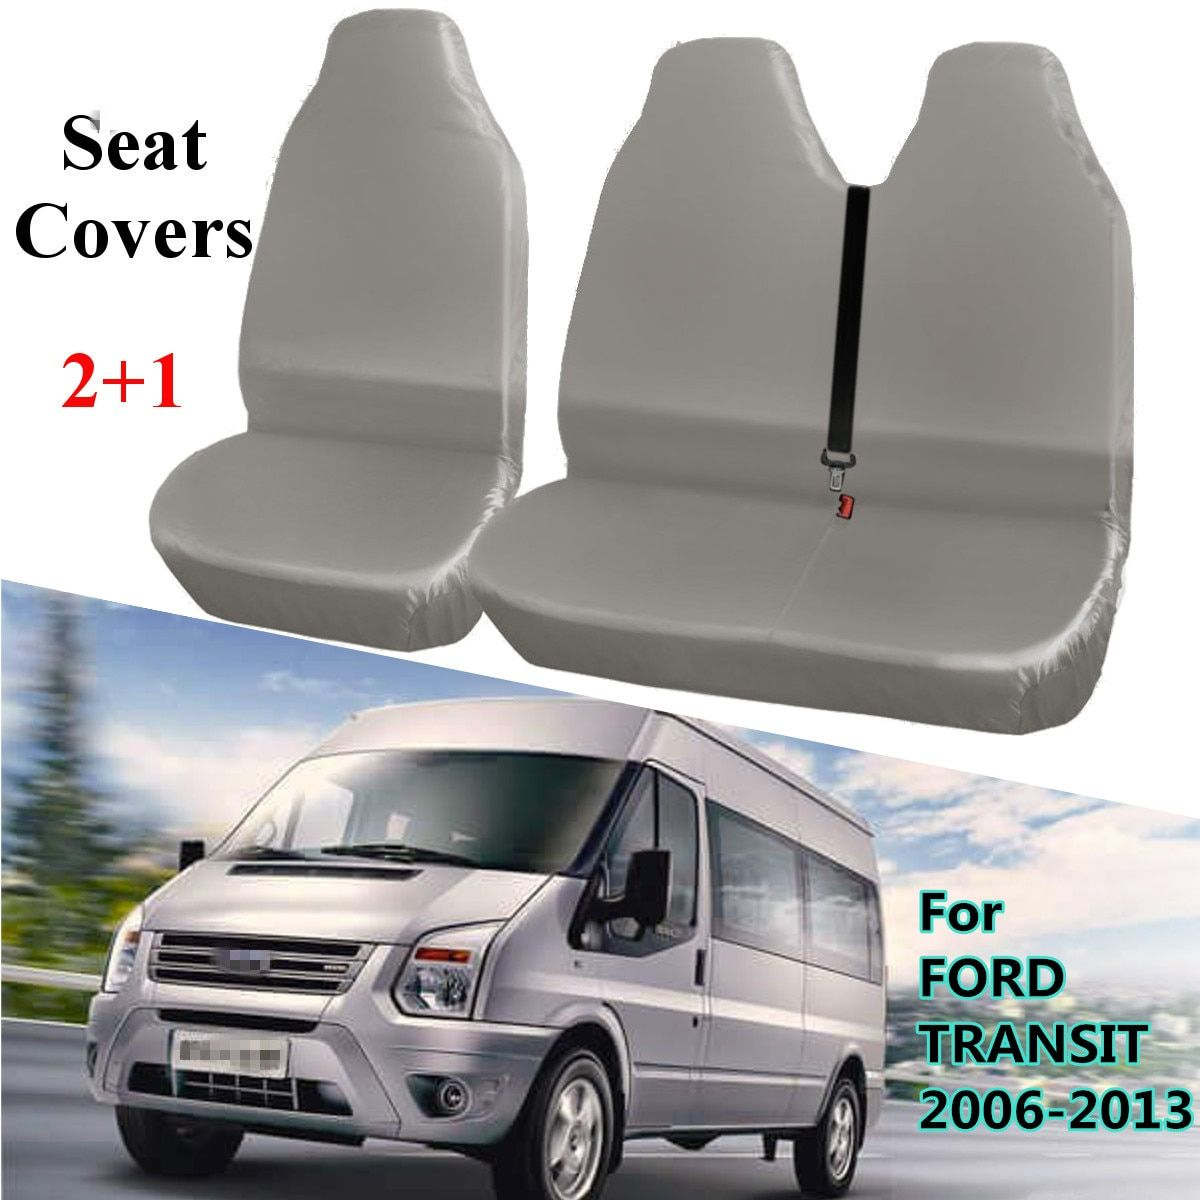 2 1 Gray Universal Waterproof Van Automobiles Seat Covers Protector For Ford Transit 2006 2013 Review Ford Transit Van Seat Covers Seat Covers